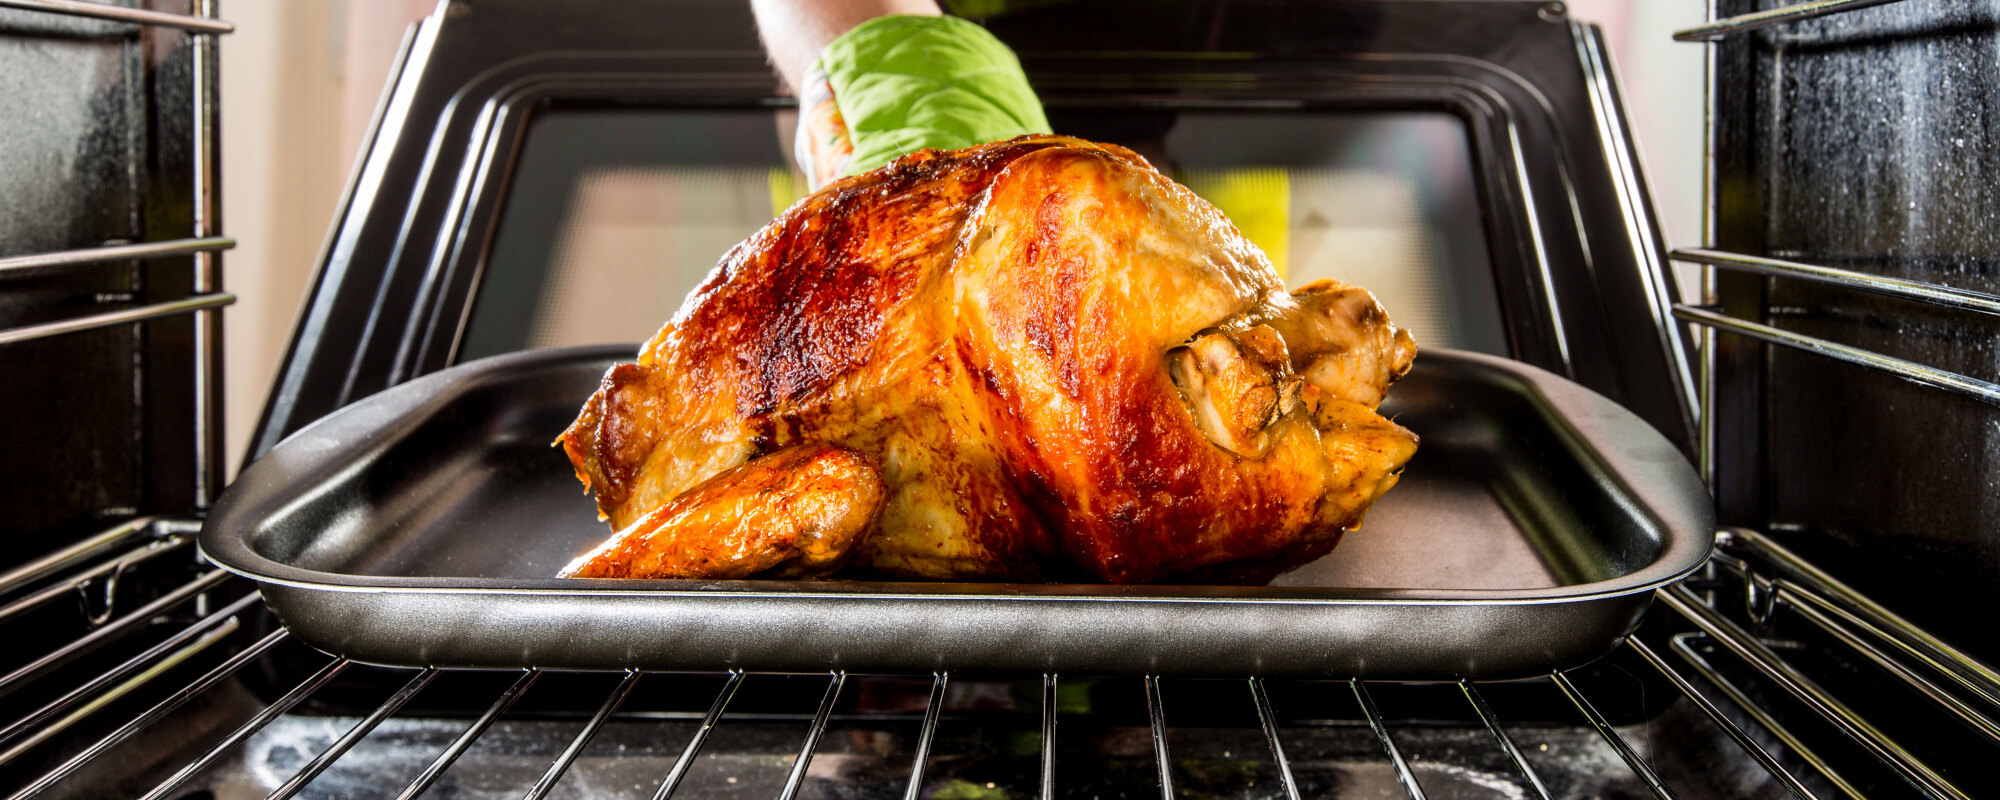 Thanksgiving To Go Meal Pick Up Catering Aspen Colorado